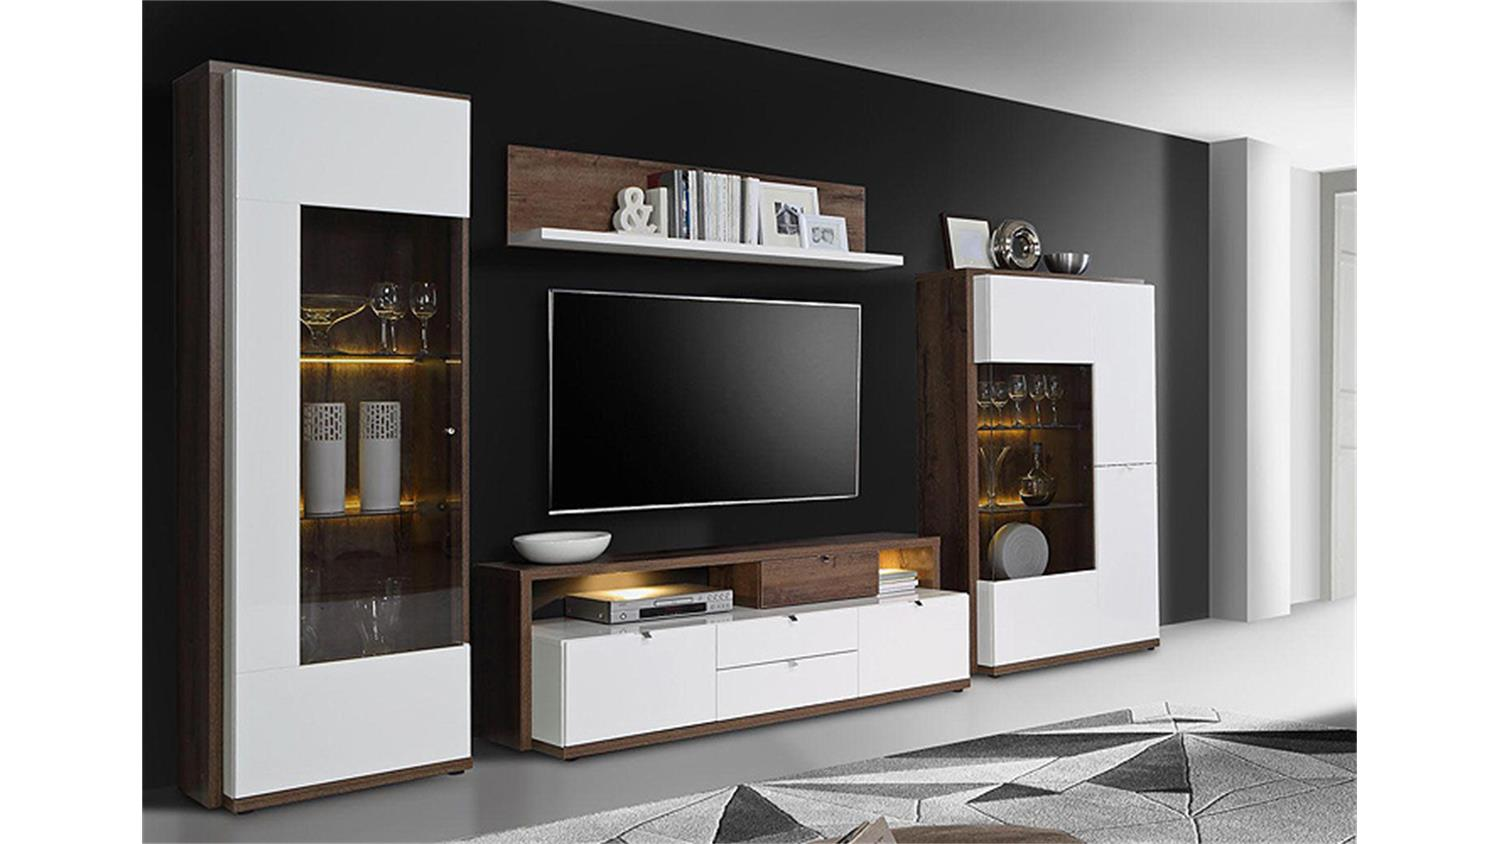 wohnwand alcano anbauwand wei hochglanz schlammeiche. Black Bedroom Furniture Sets. Home Design Ideas